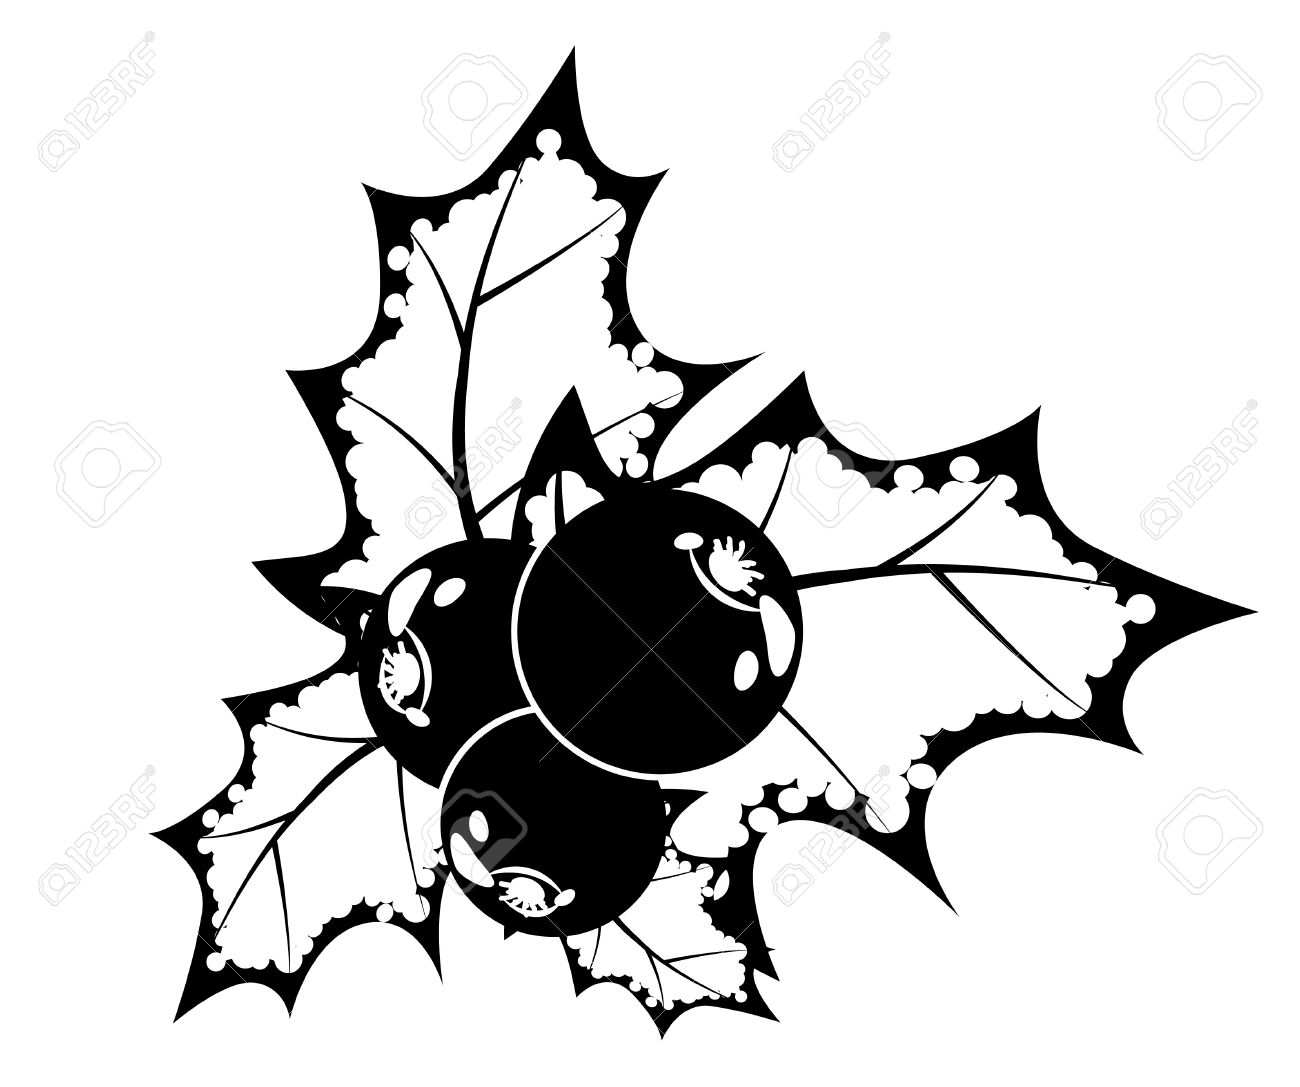 Free christmas holly clipart black and white picture royalty free download Holly Clipart Black And White   Free download best Holly Clipart ... picture royalty free download